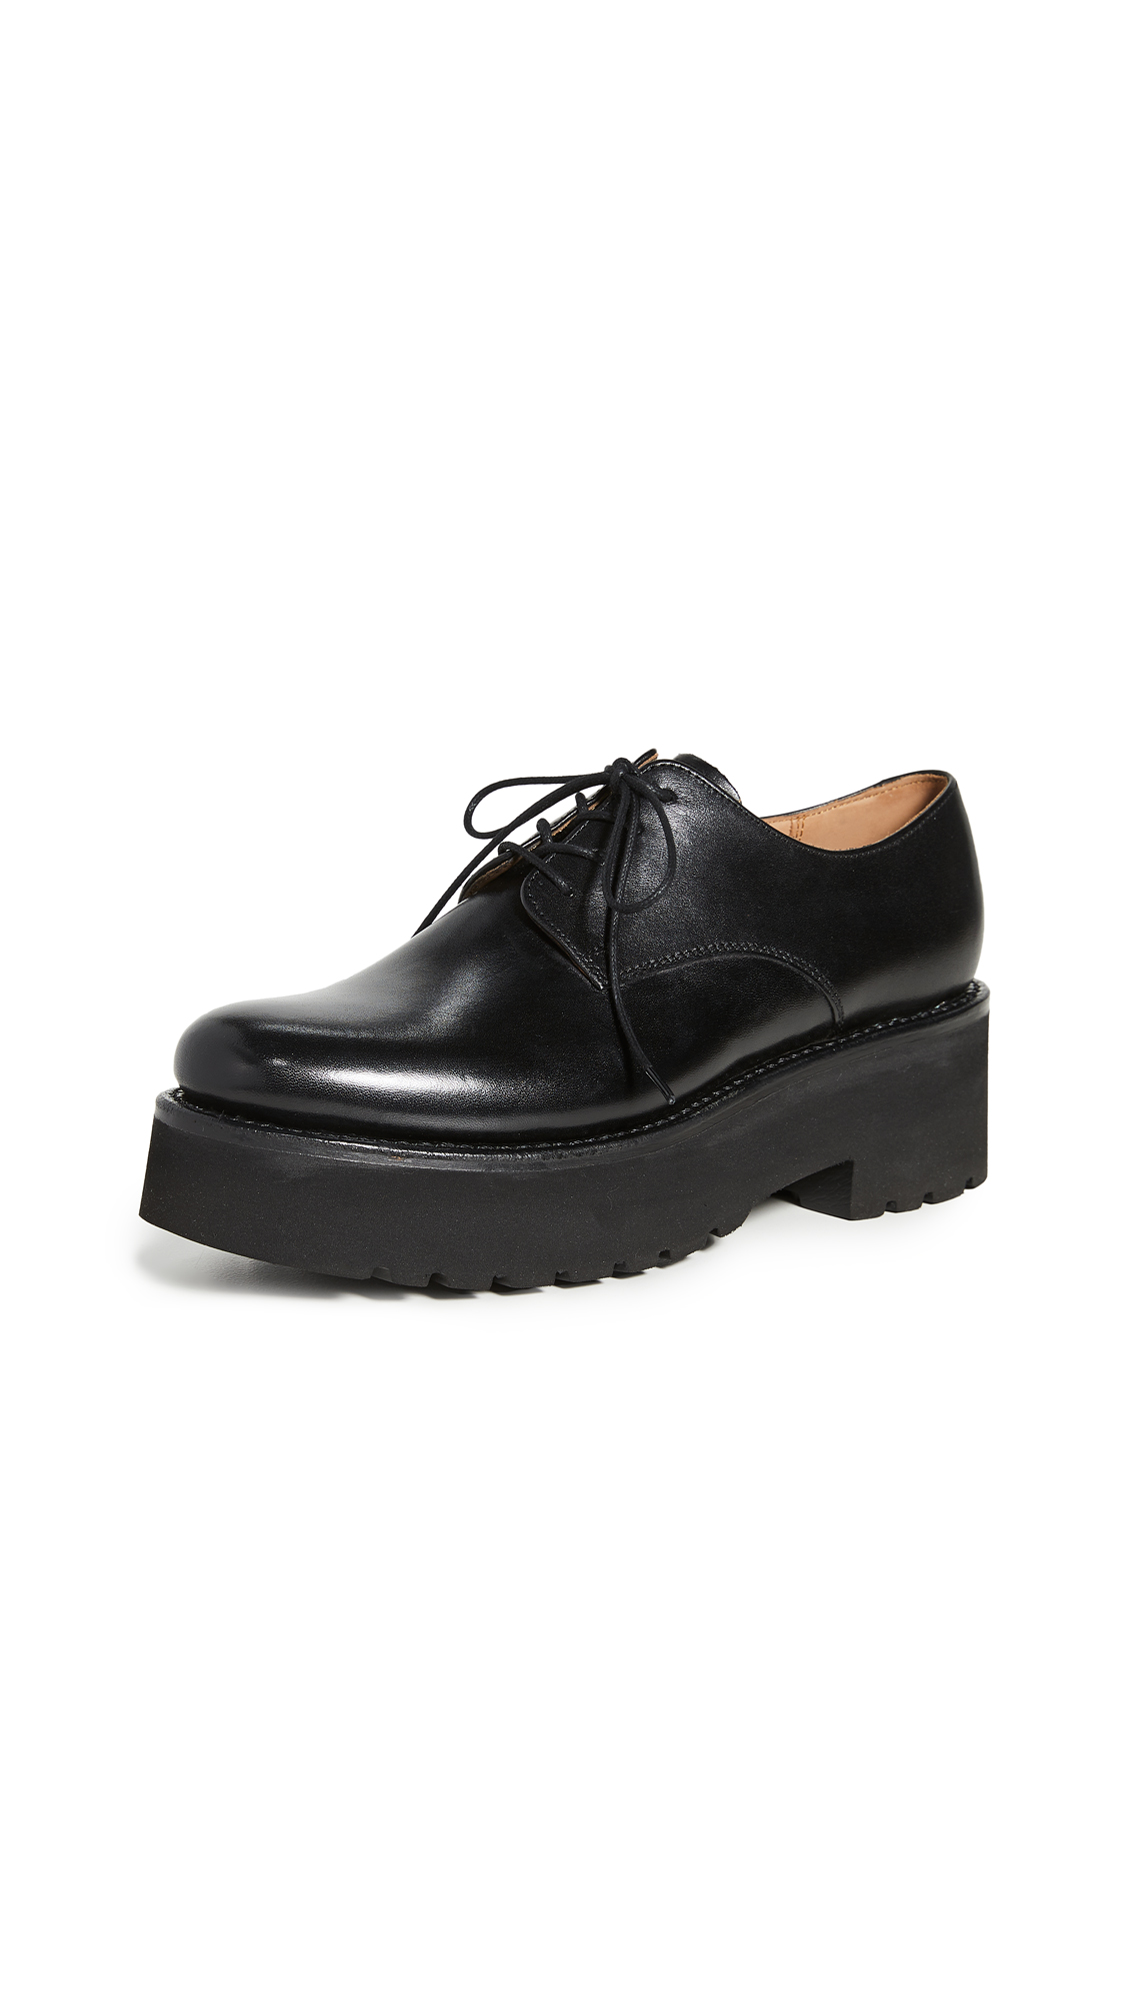 Grenson Eve Oxfords - 50% Off Sale